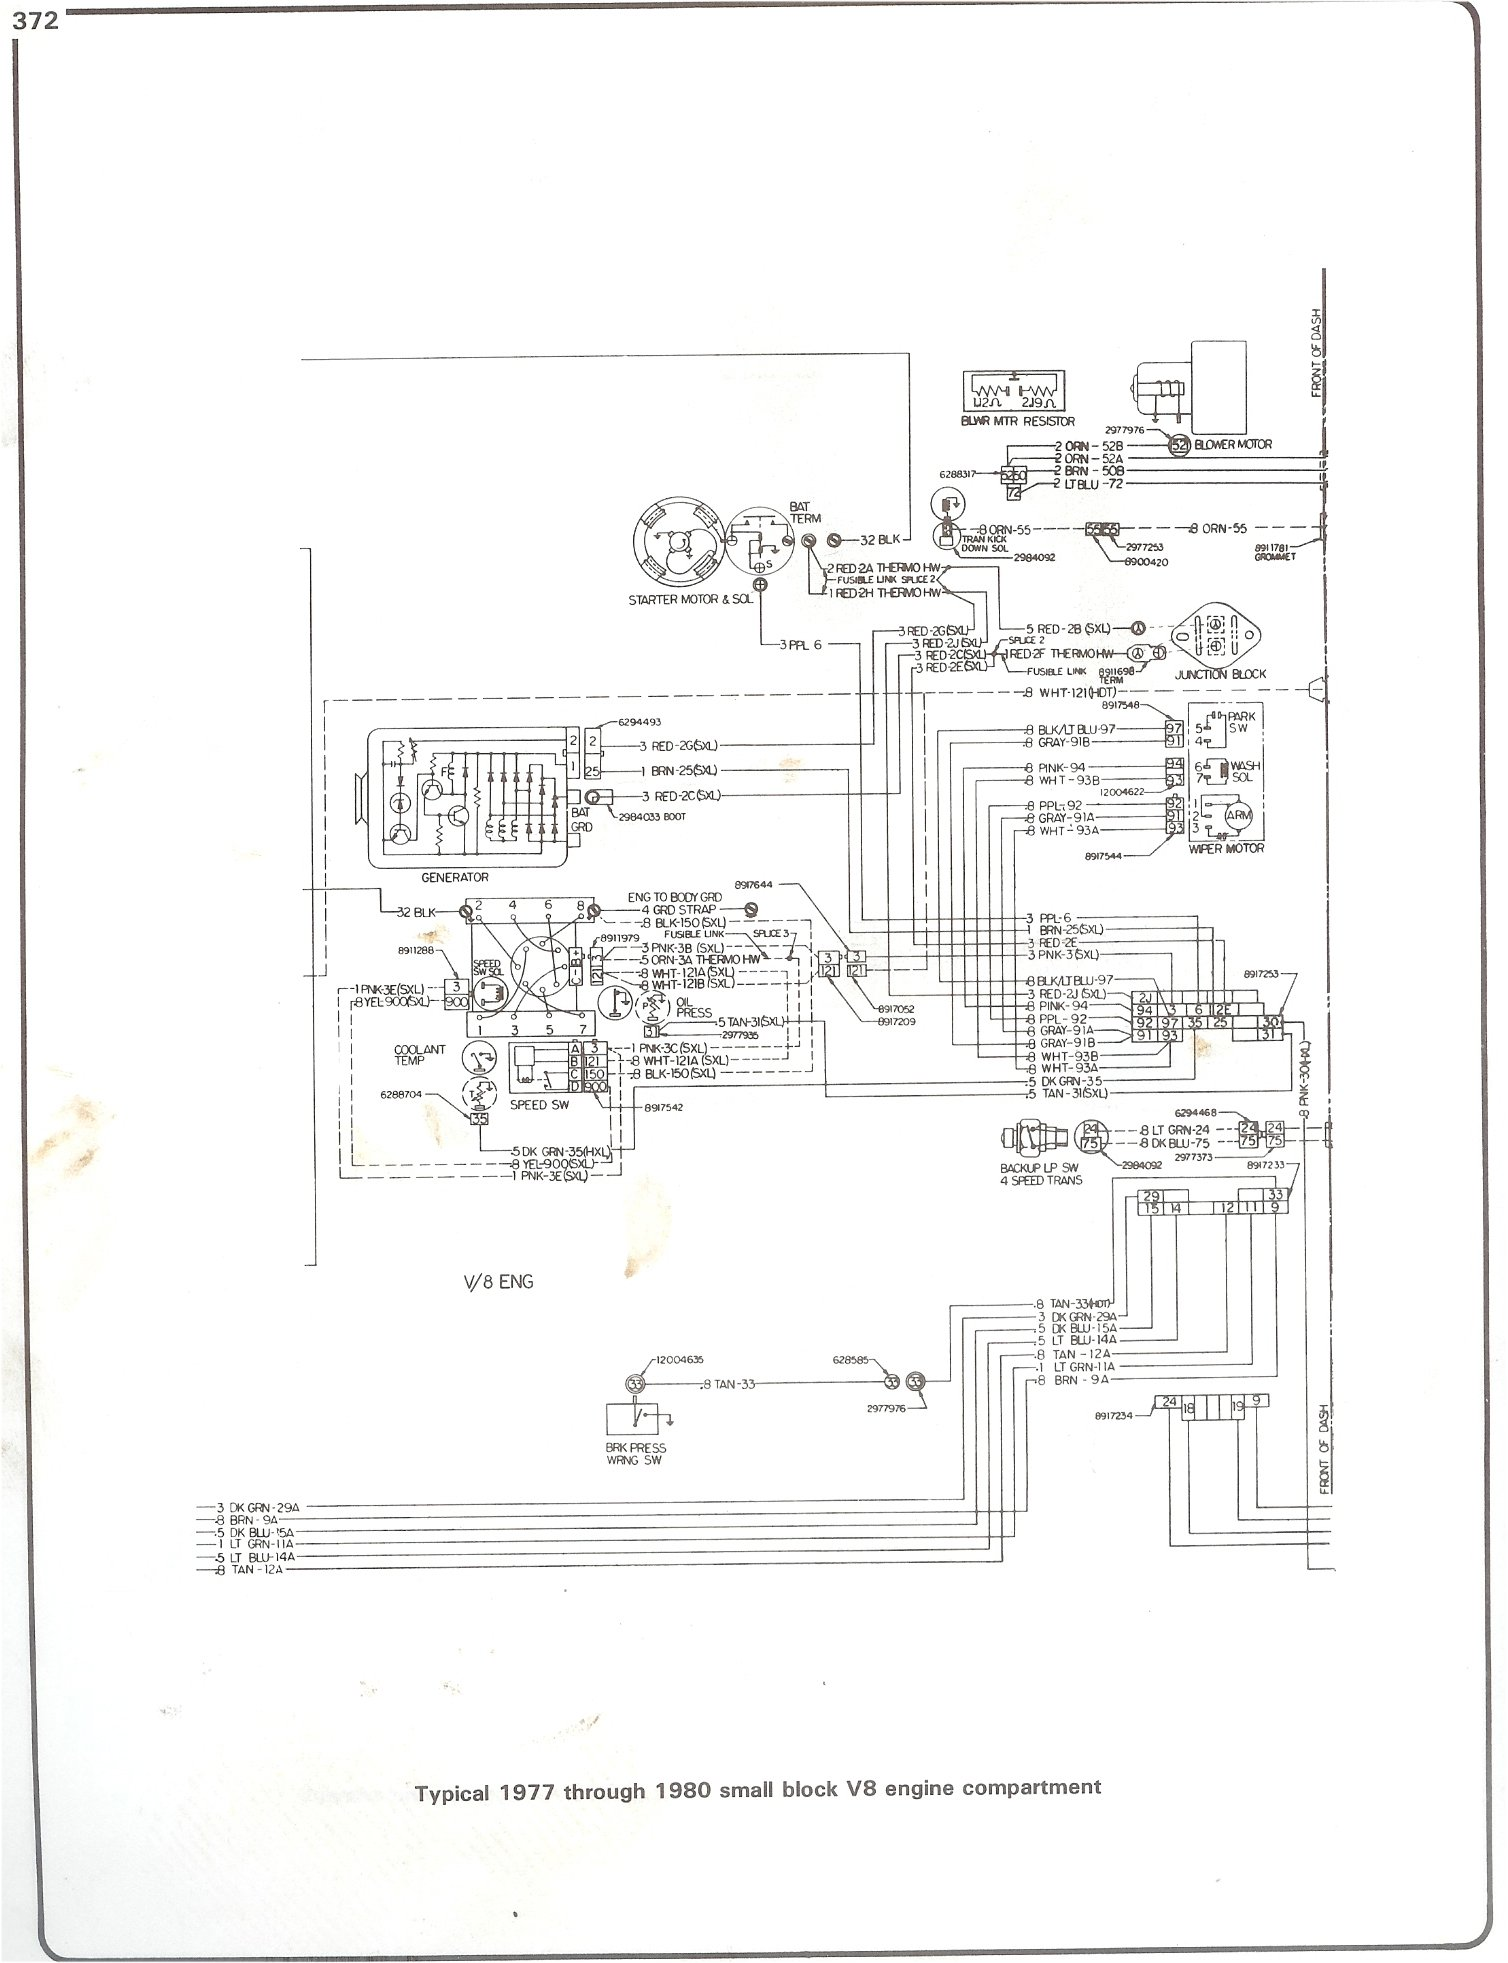 Complete 73 87 Wiring Diagrams Chevy Truck Fuel Tank Selector Printable Diagram 77 80 Sbc Engine